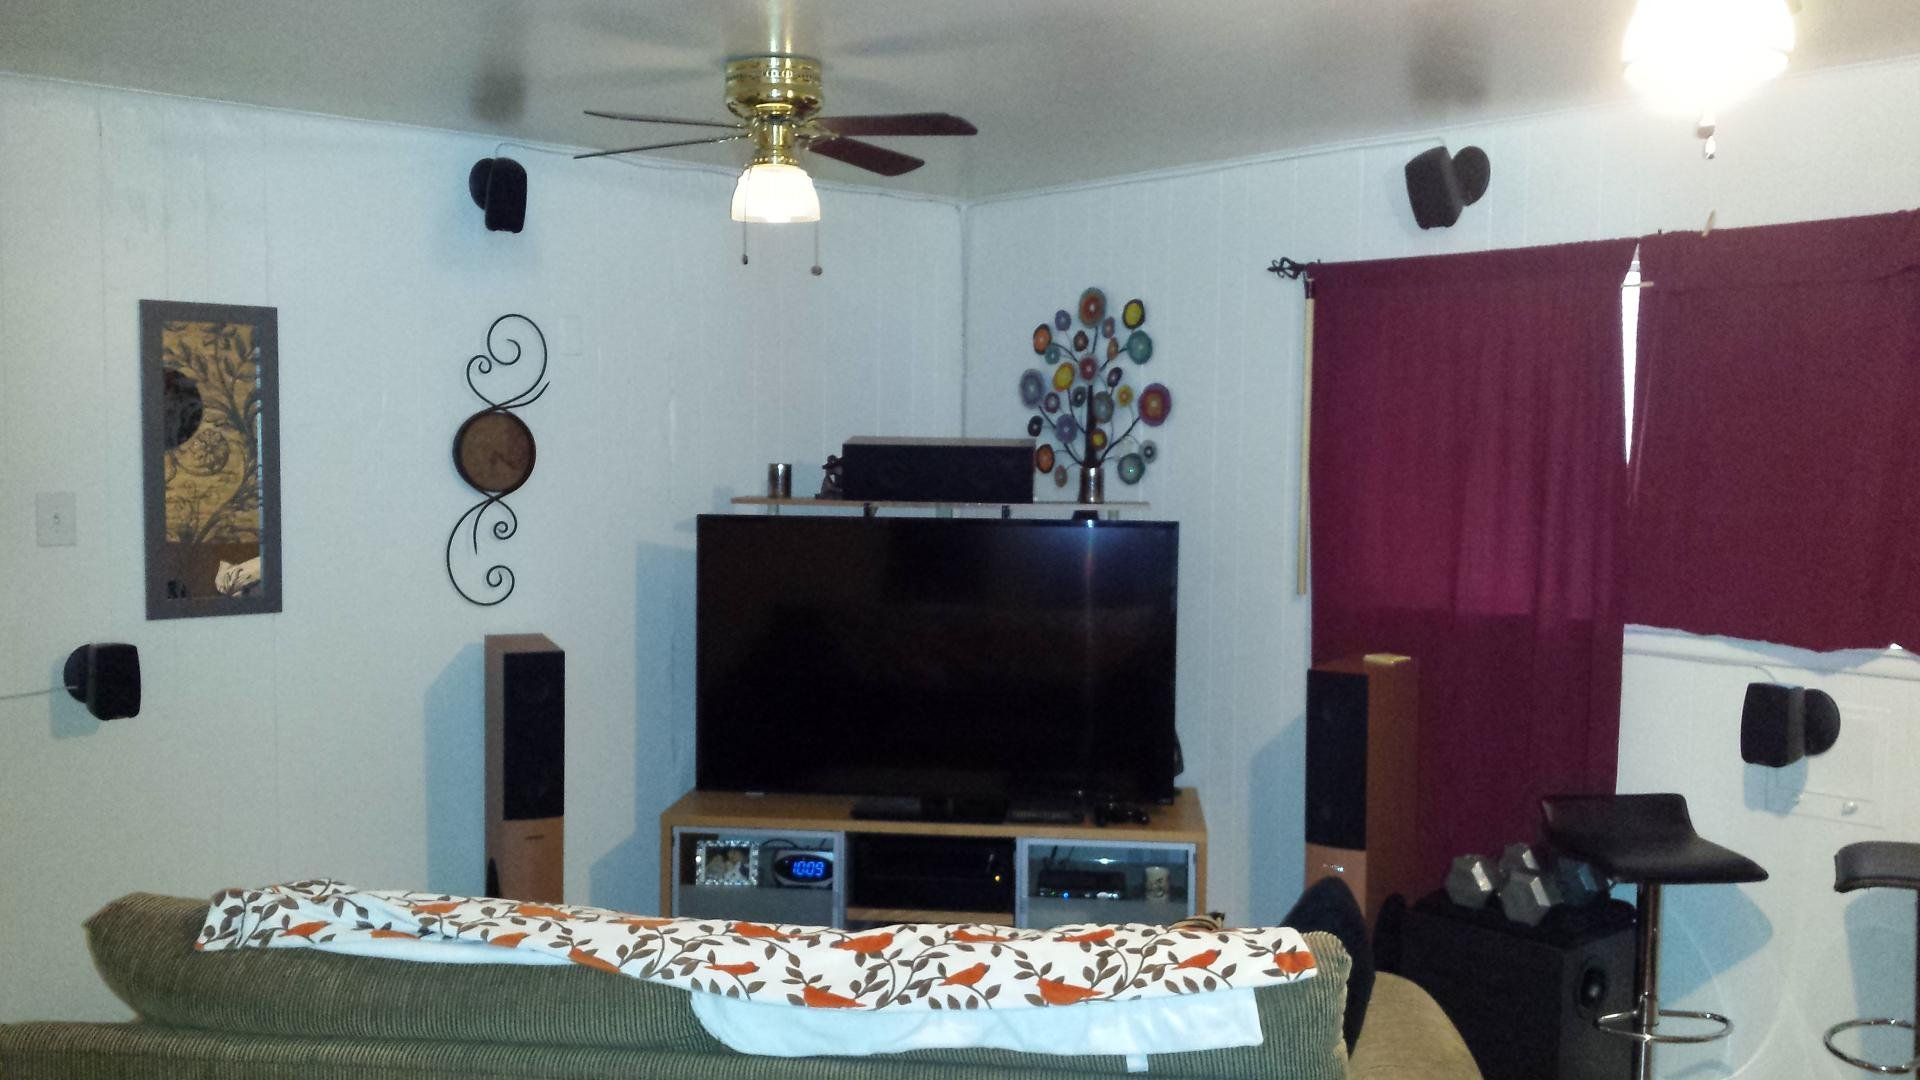 Click image for larger version  Name:home theater.jpg Views:27 Size:181.9 KB ID:111129